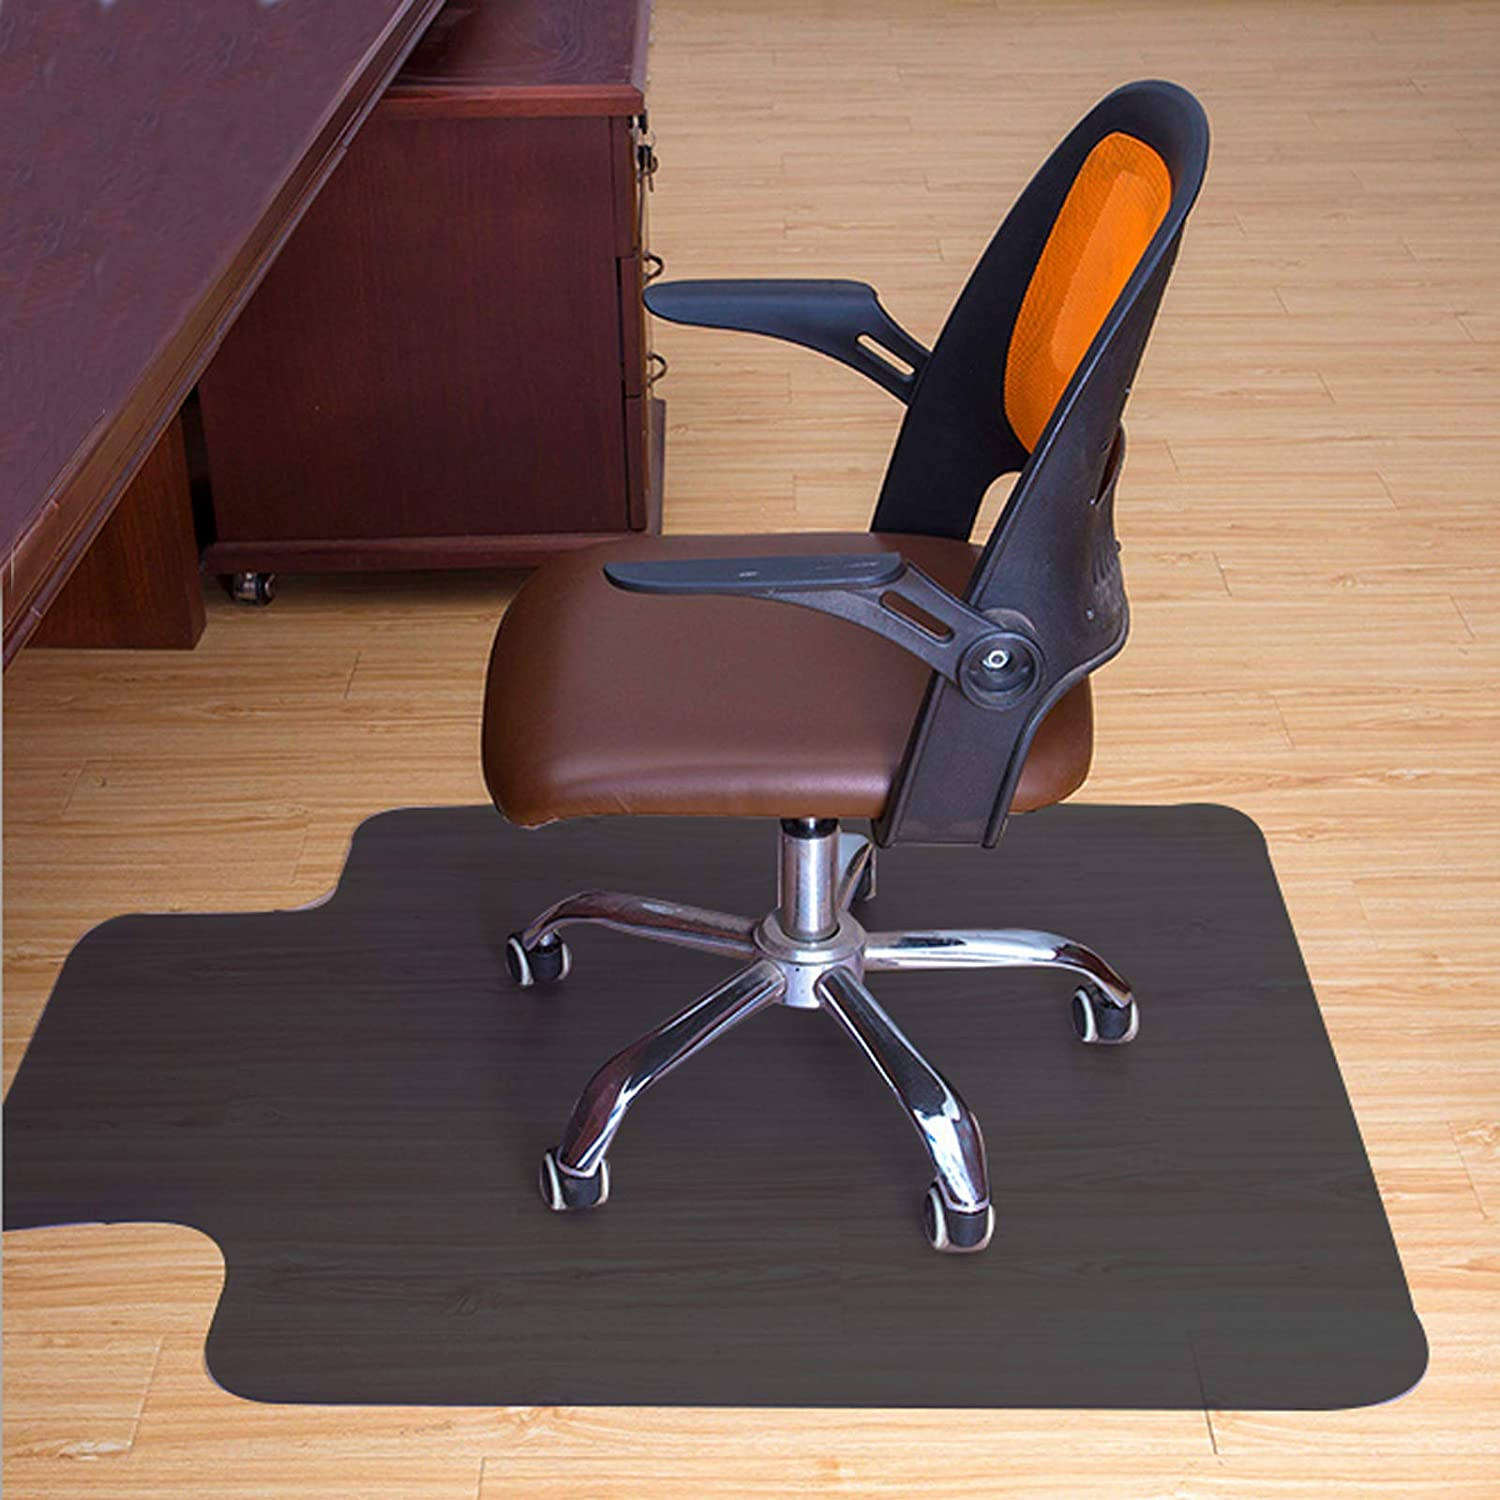 BigTron Office Desk Chair Mat 36x48 with Floors Lip for Hardwood Cheap sale Max 89% OFF